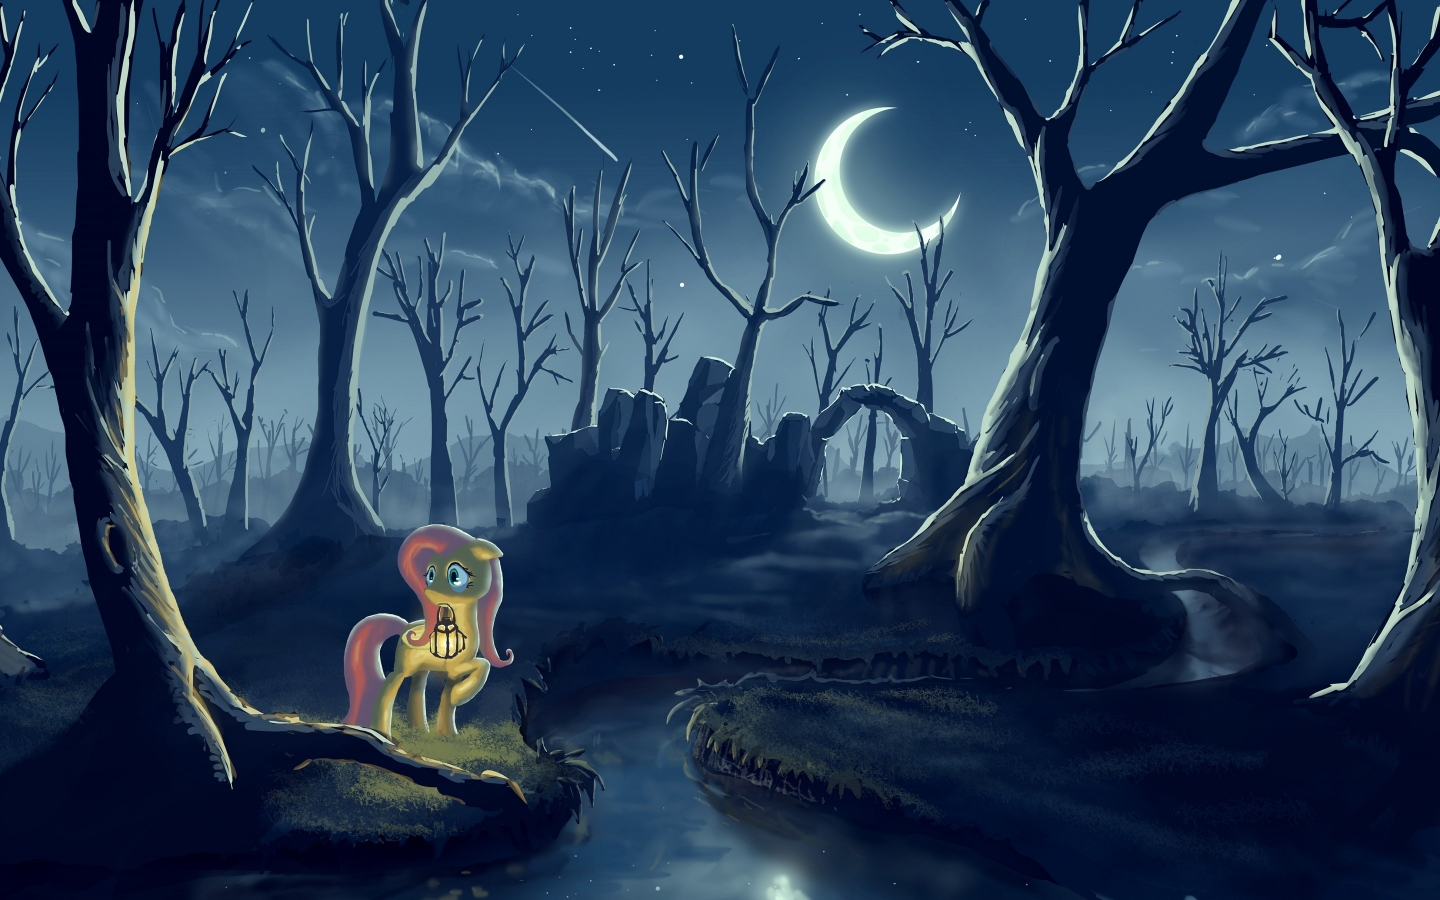 My Little Pony Poster for 1440 x 900 widescreen resolution